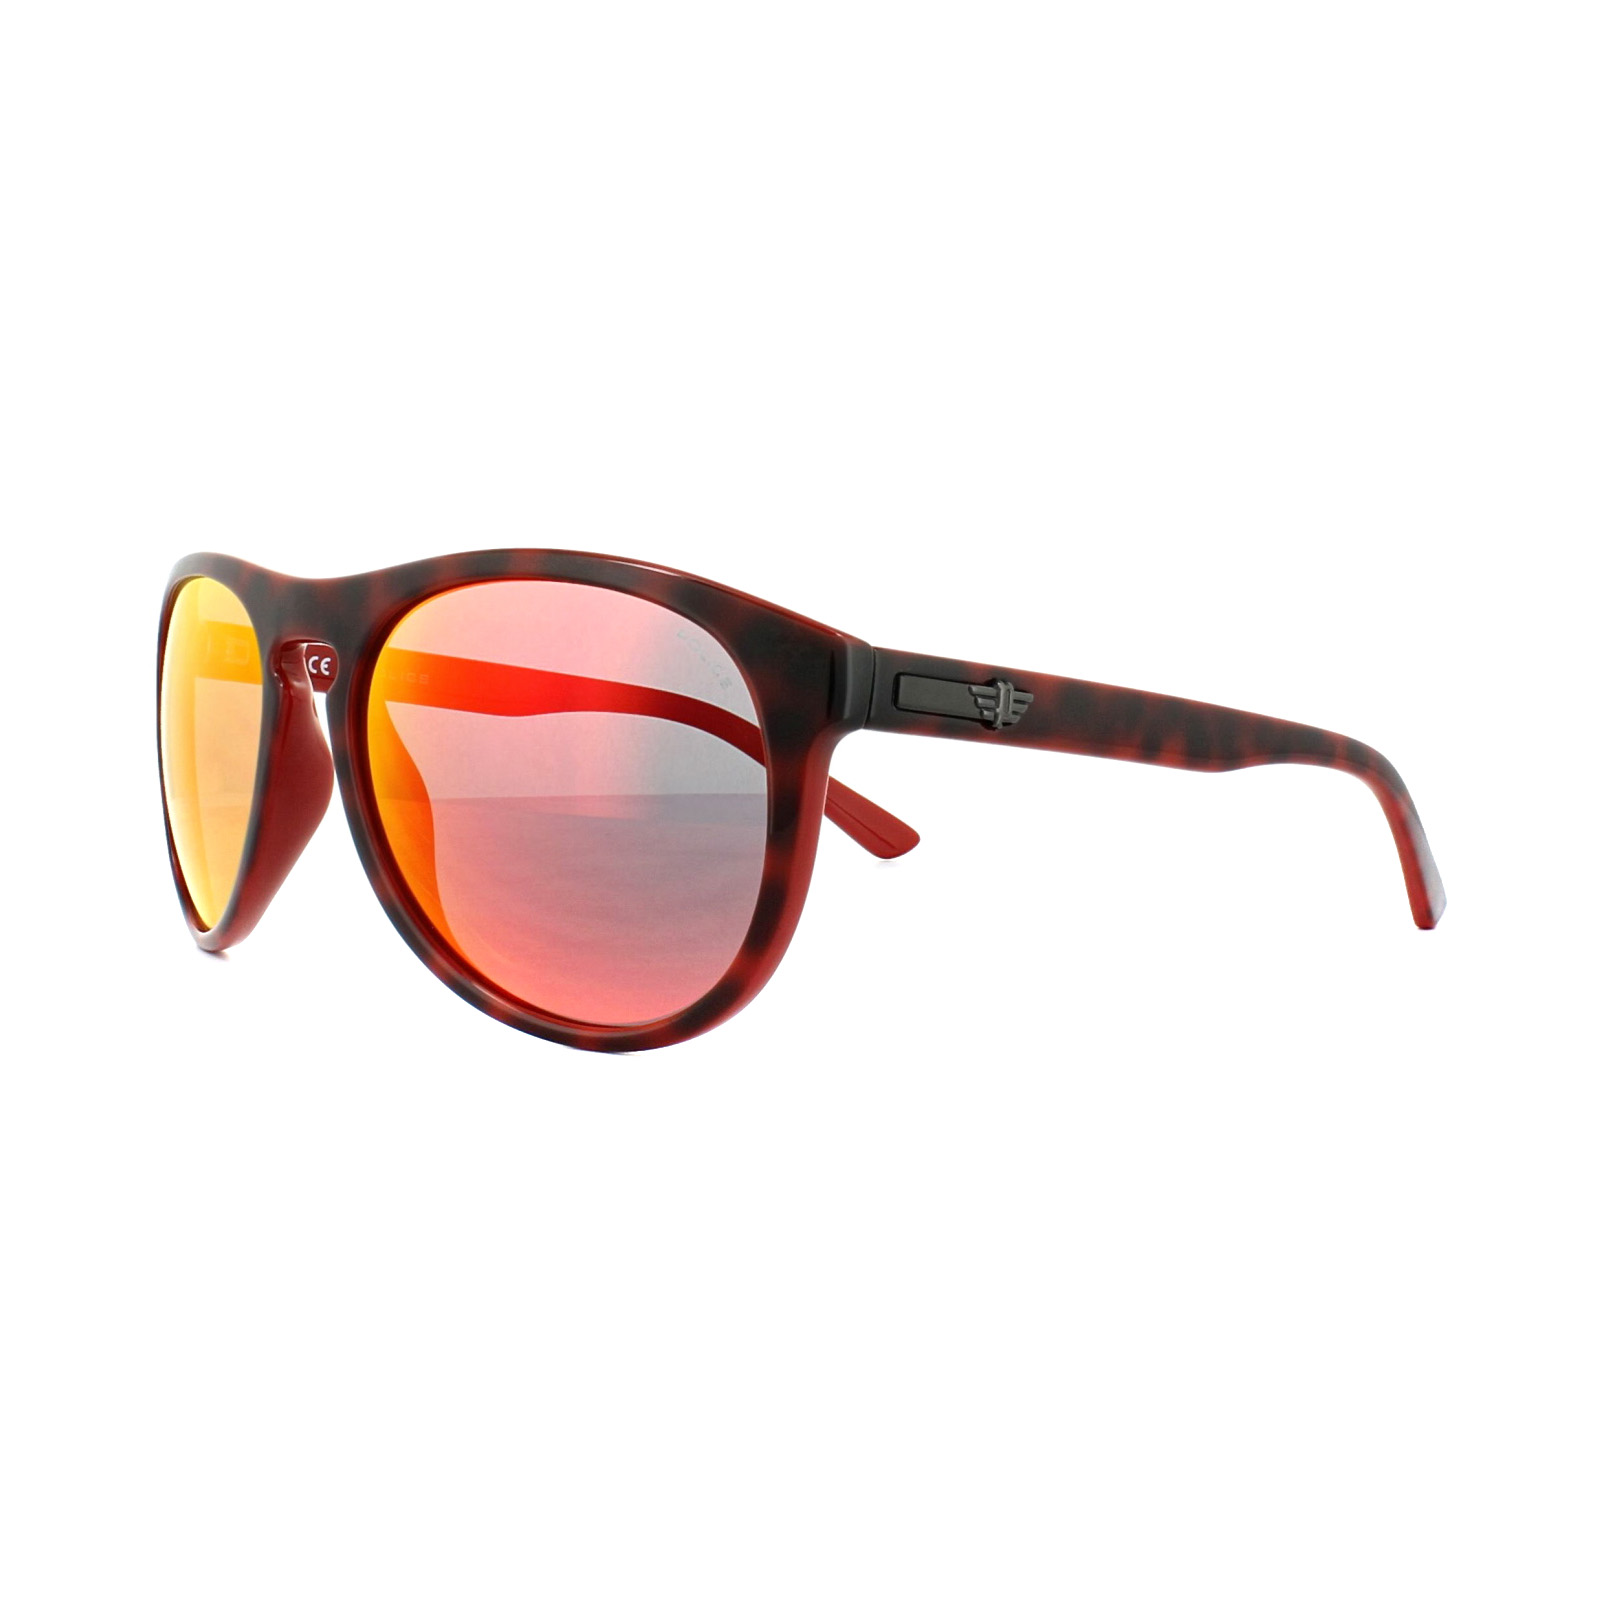 Sentinel Police Sunglasses S1871 Astral 2 6XRR Shiny Havana Red Grey Mirror  Red ec370ceda7